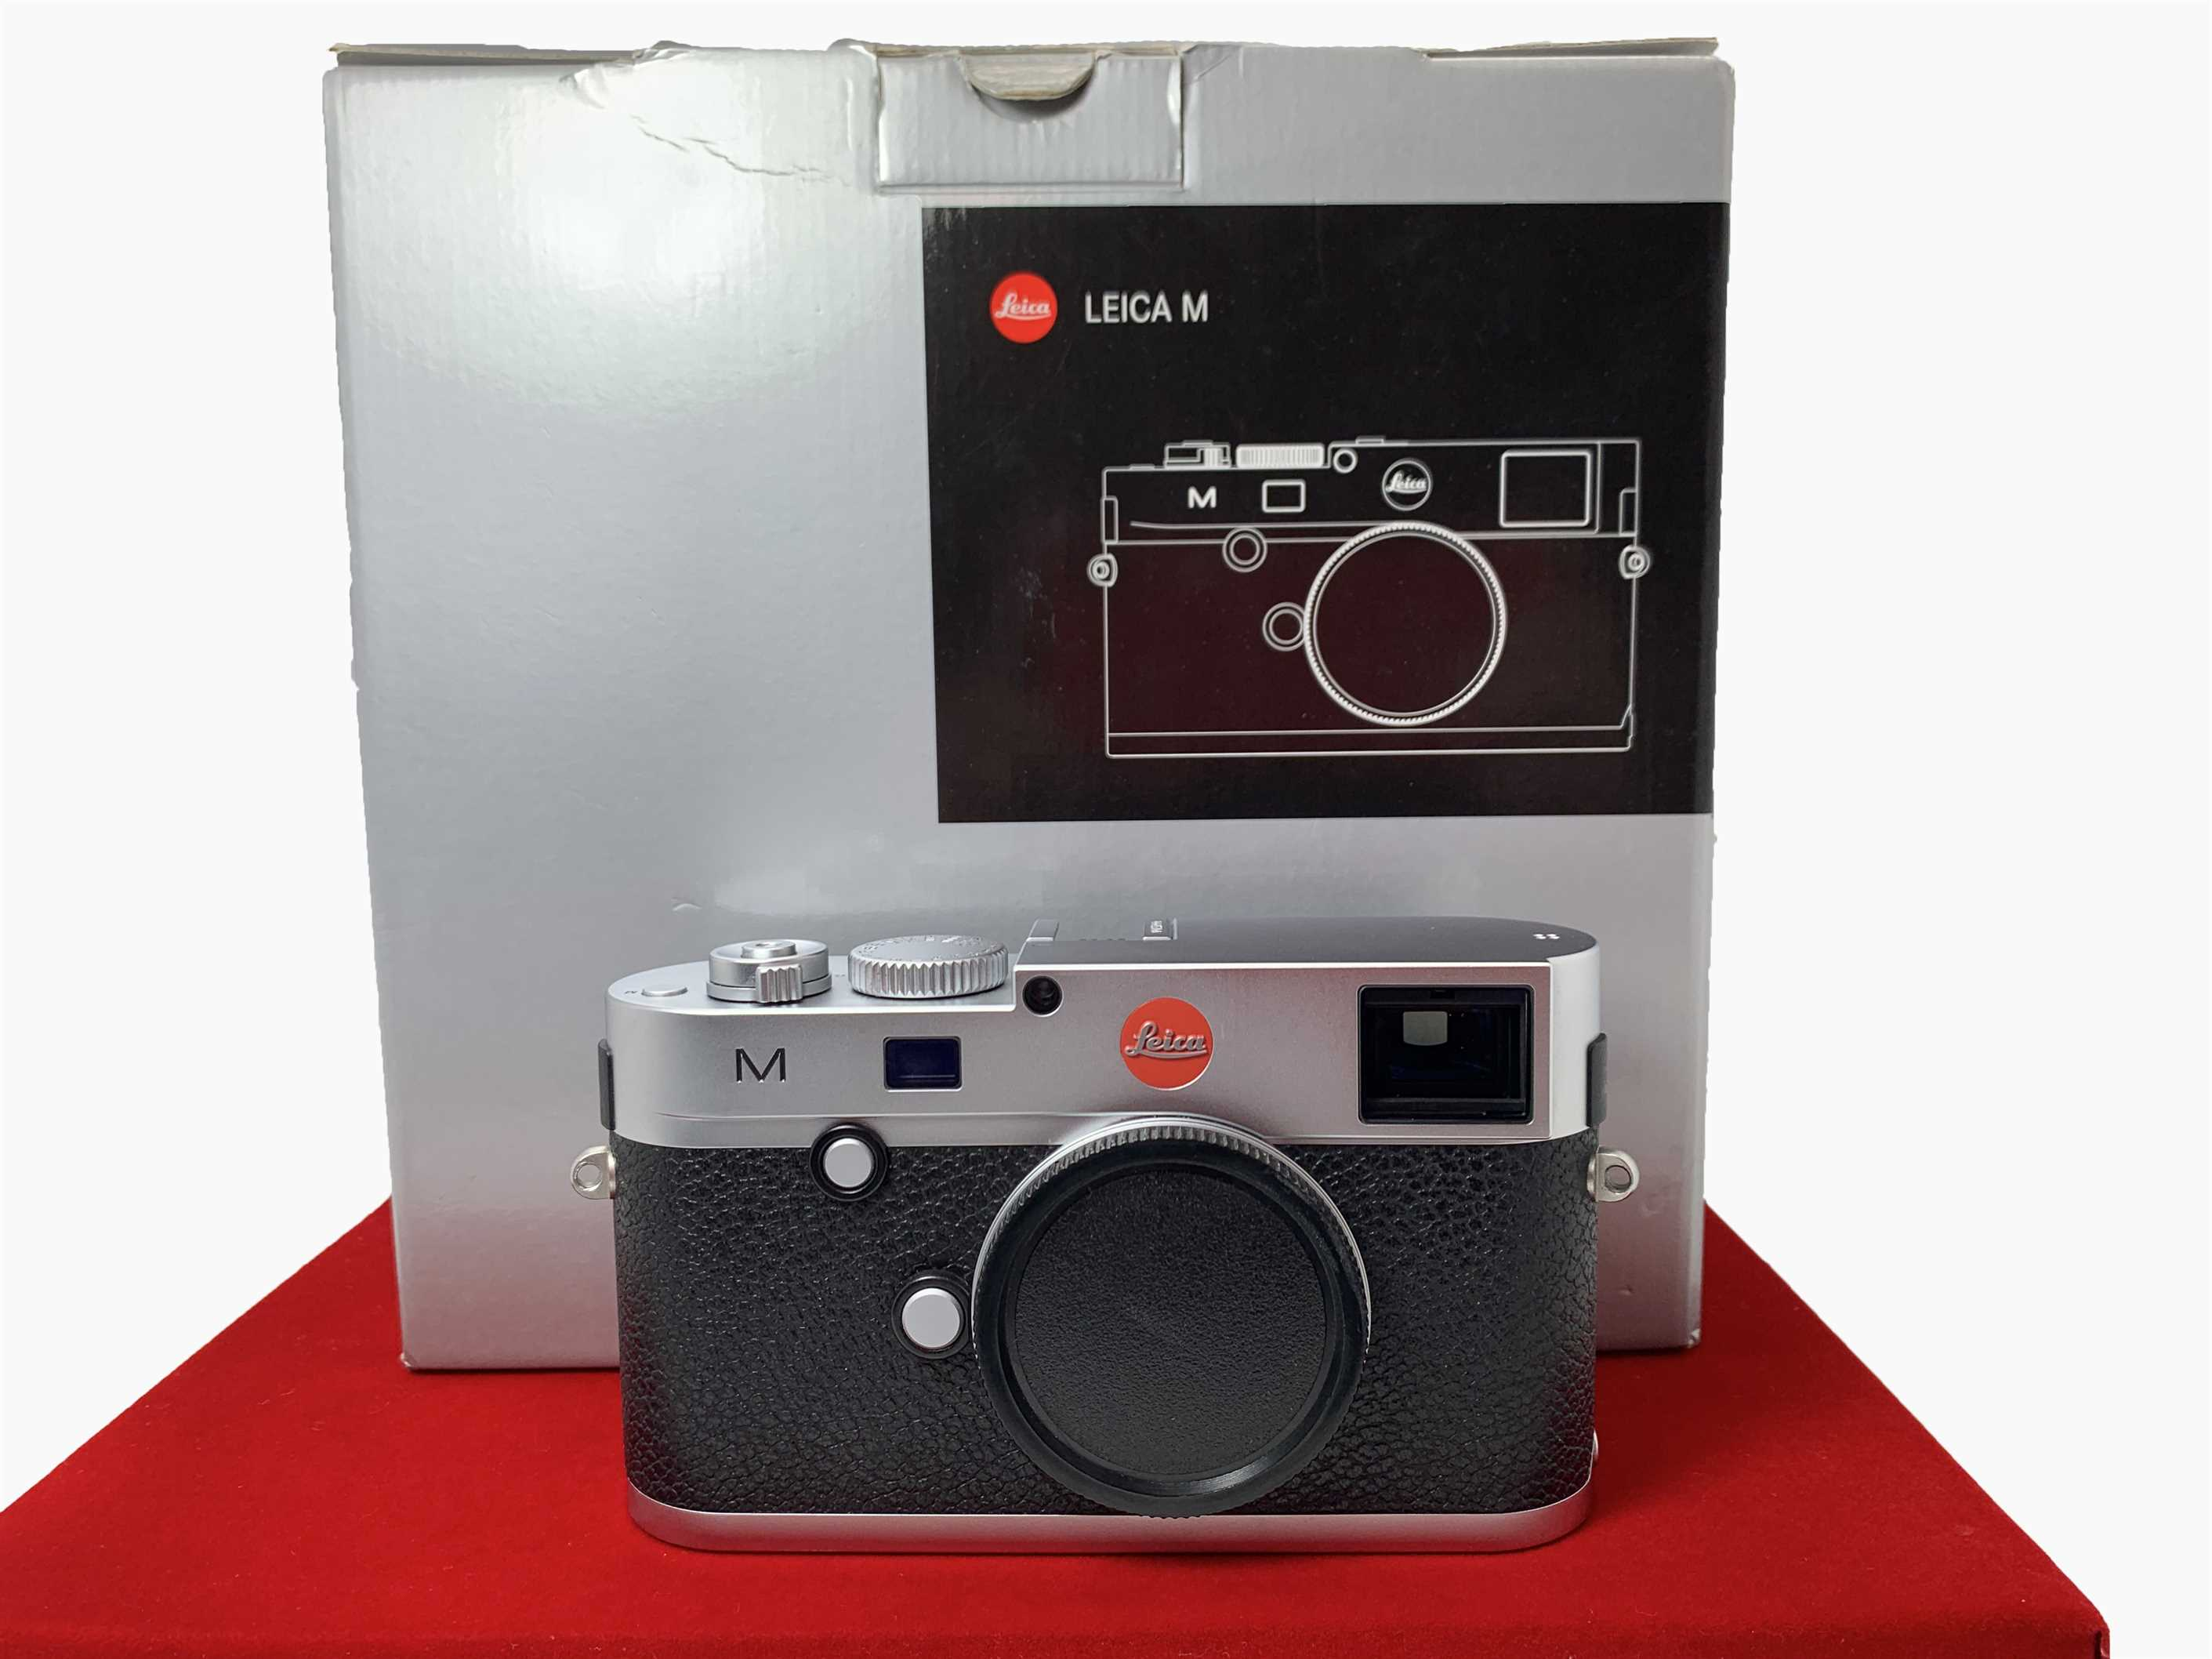 [USED-PJ33] Leica M240 Camera Body (Silver), 95% Like New Condition (S/N:4445346)